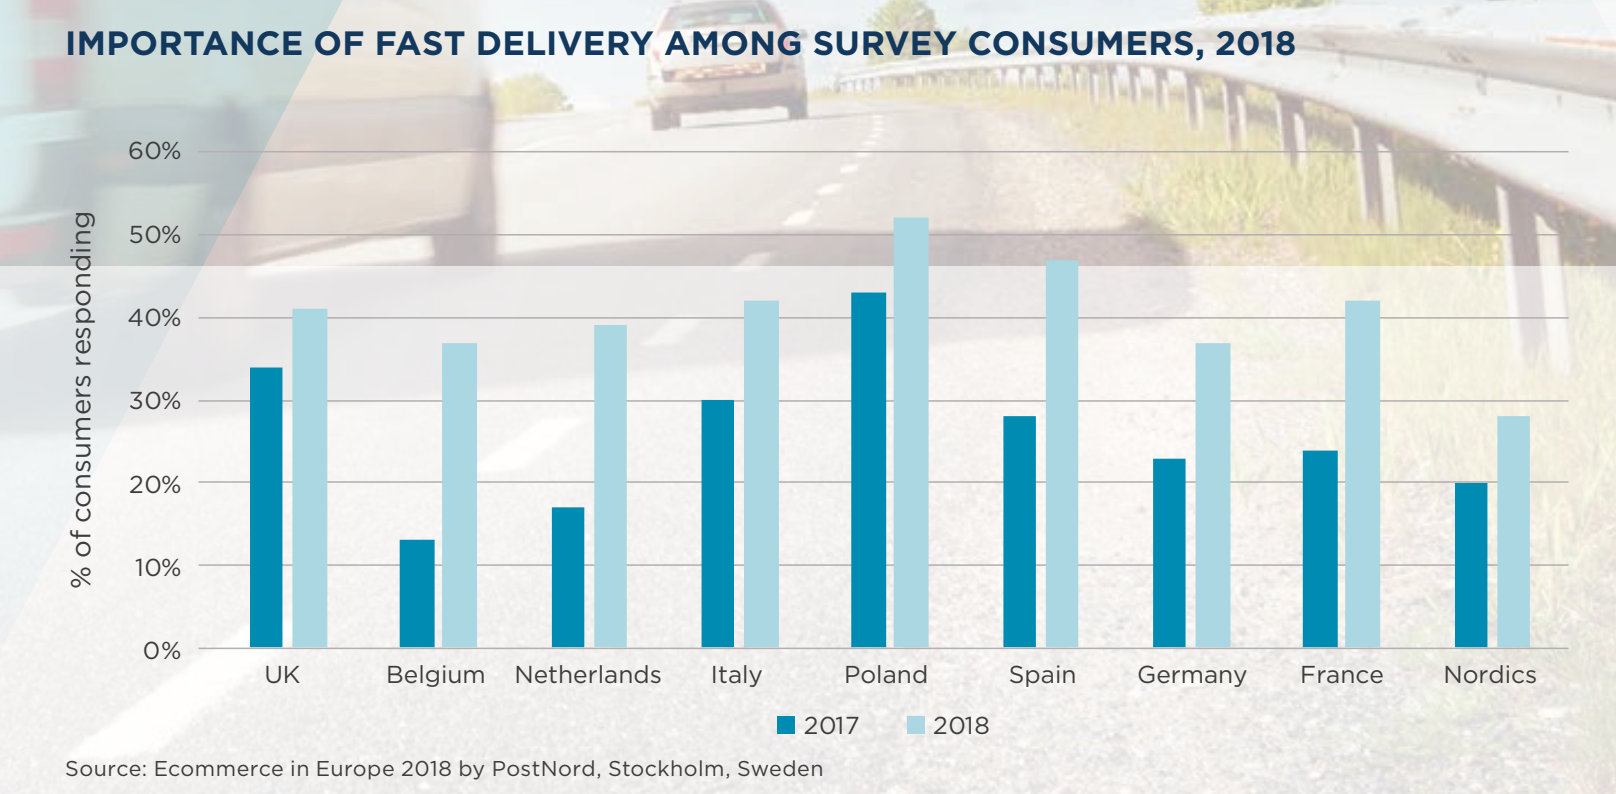 Importance of fast delivery among survey consumers